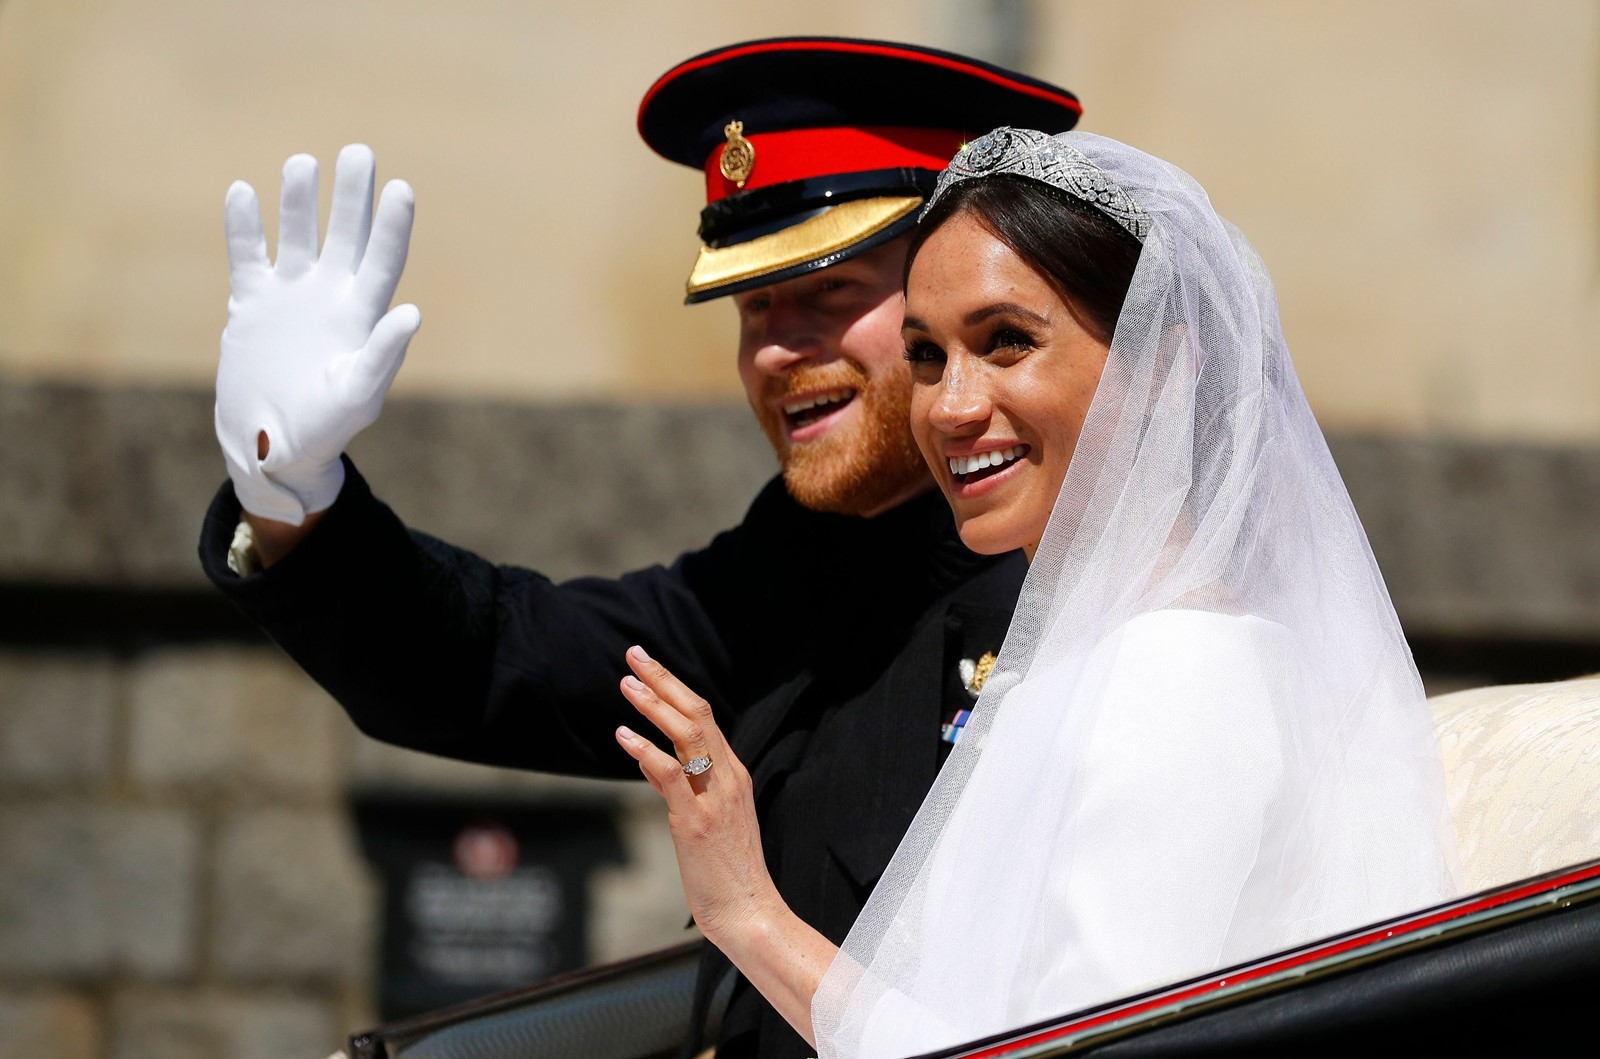 The British royal family did not invite foreign dignitaries to Prince Harry and Meghan Markle's wedding partly to avoid having to invite Trump. — Photograph: Phil Noble/Agence France-Presse/Getty Images.